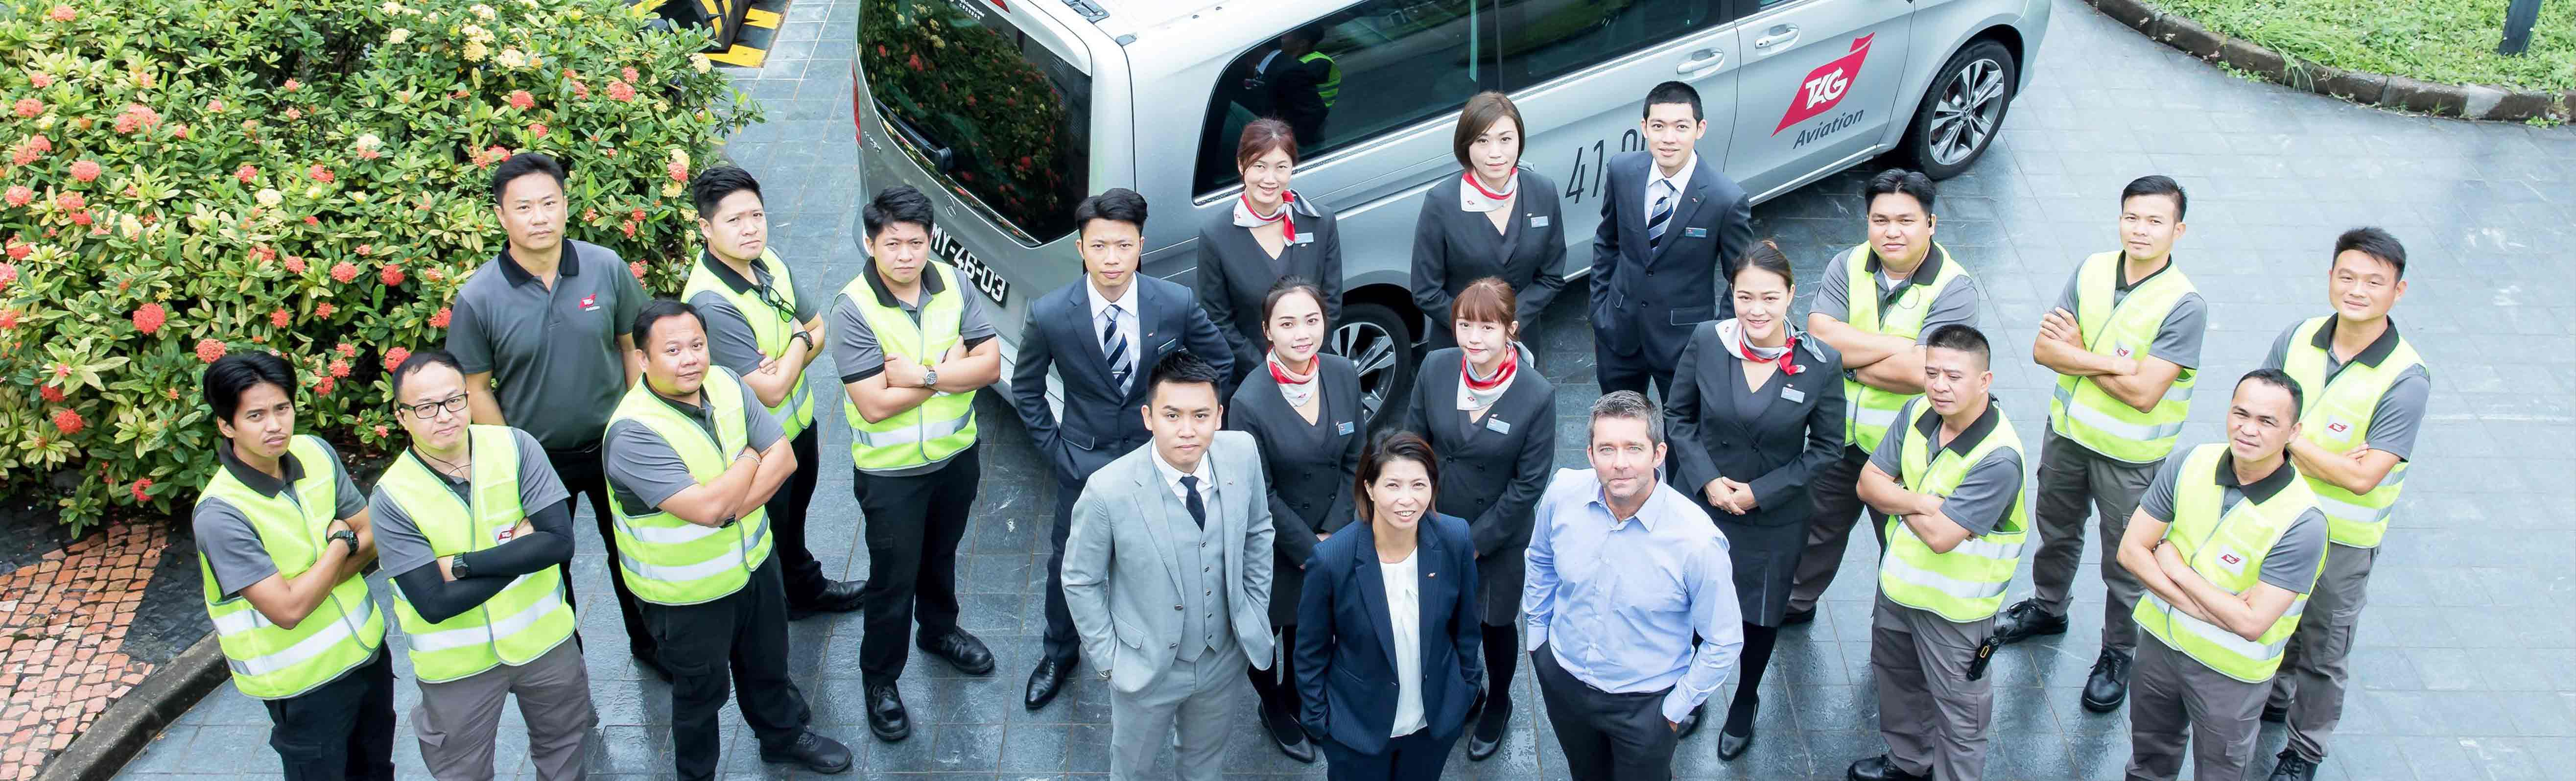 TAG Aviation Macau receives IS-BAH Accreditation for ground handling operations